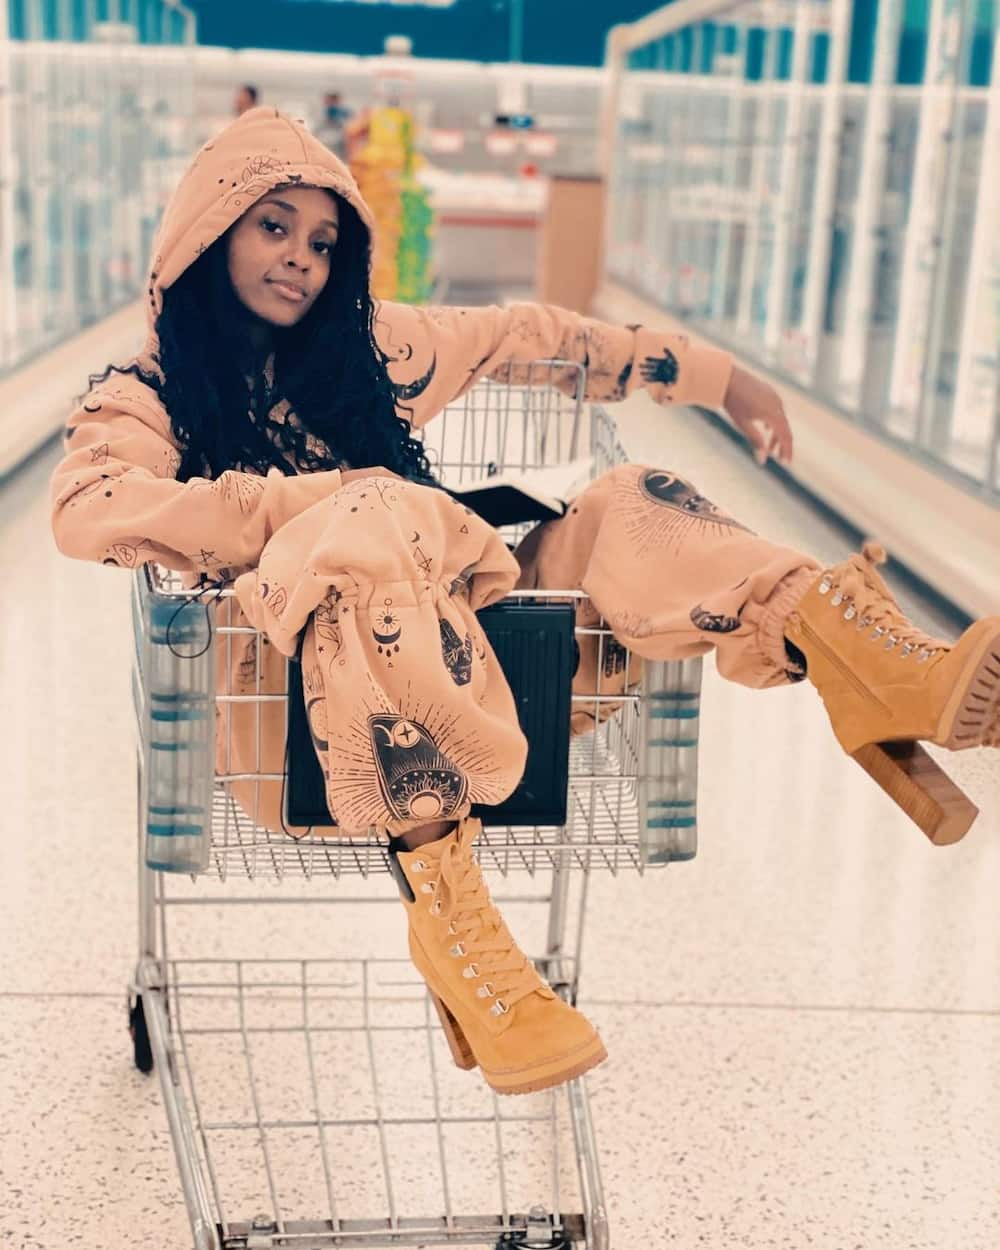 Love somebody: Power actor Rotimi features bae Vanessa Mdee in latest music video